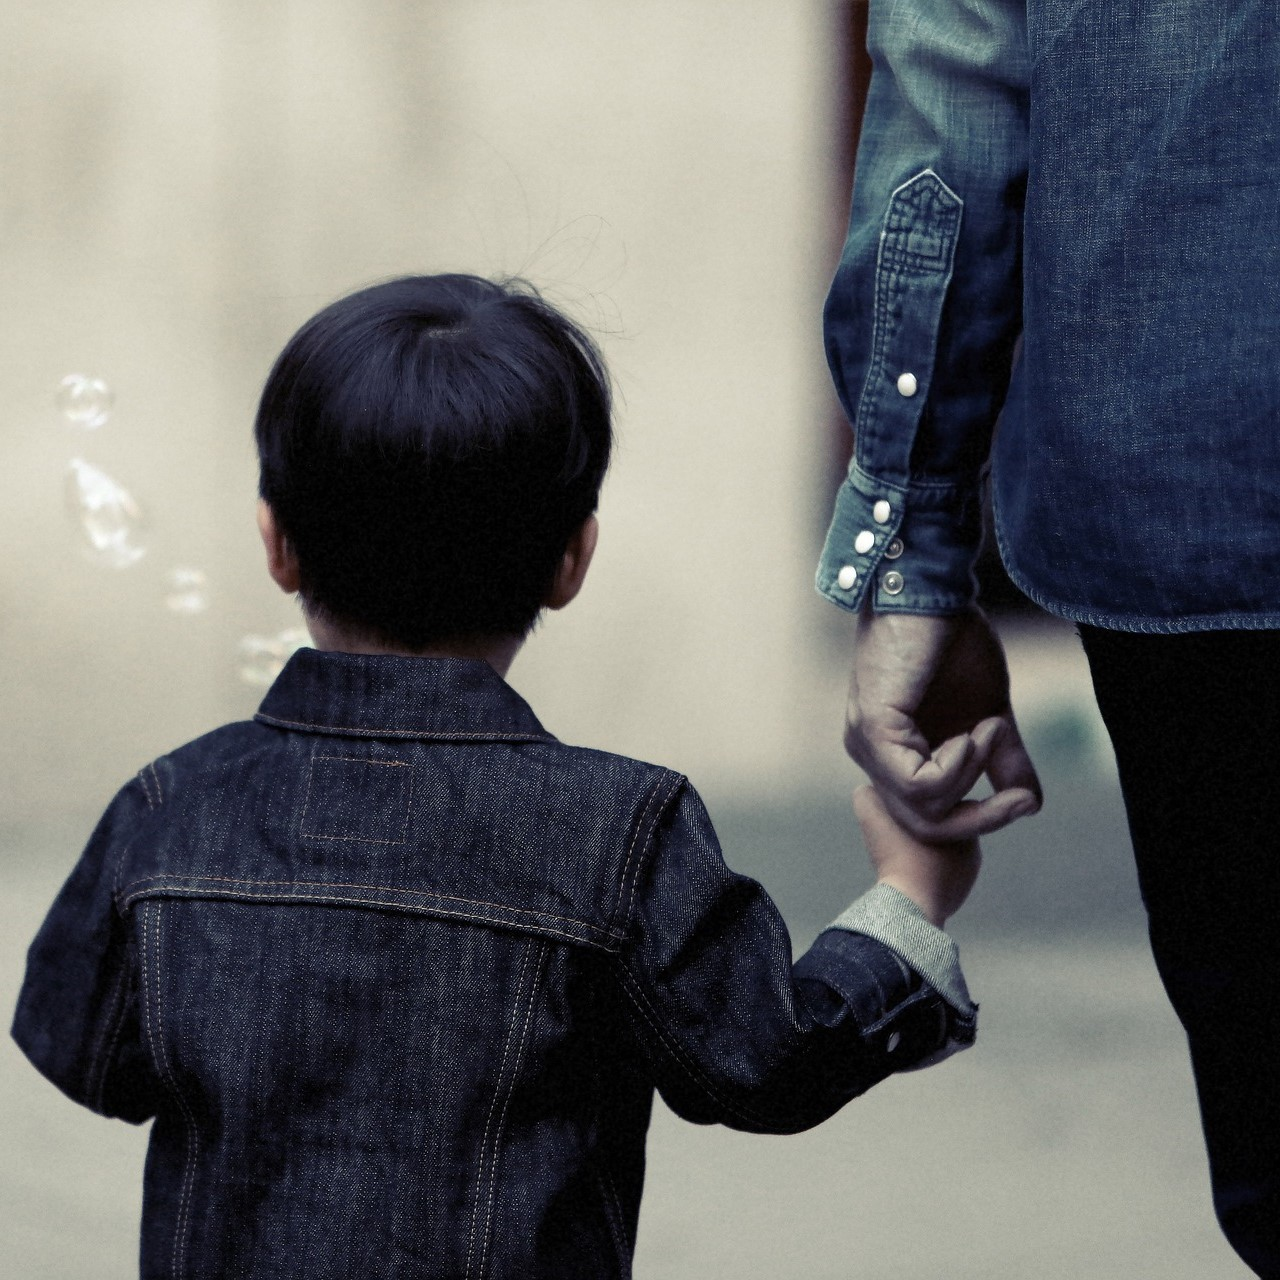 Covid-19 crisis has created unique challenges for working single parents